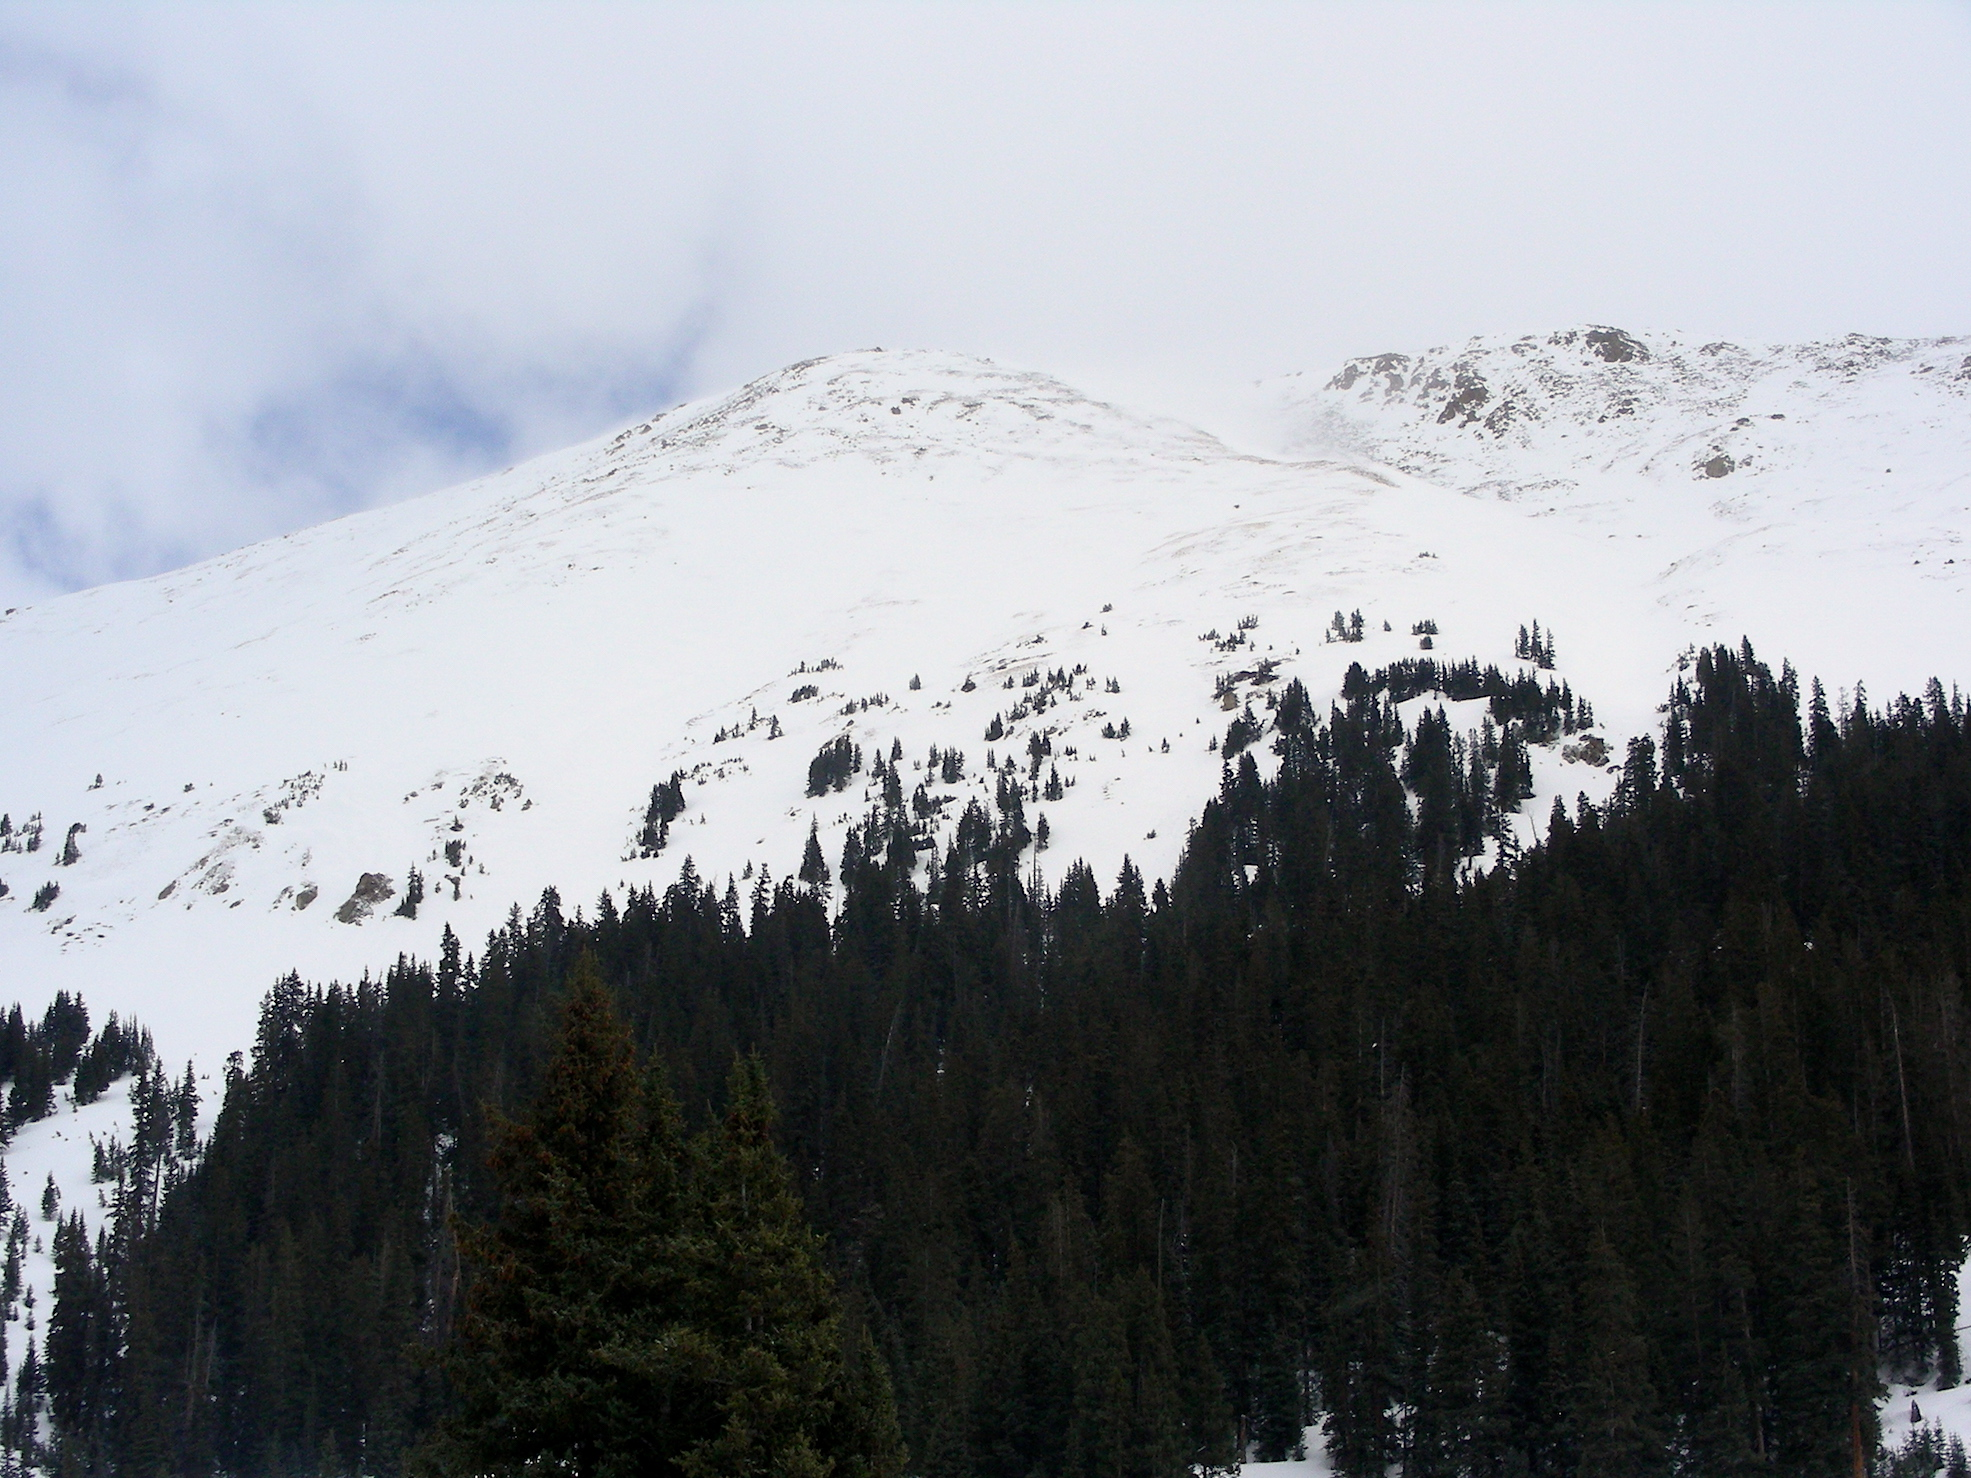 Peak near Loveland Pass, picture taken from Grizzly sample site.  As of the morning of April 9 dust was not visible on snow surface throughout landscape.